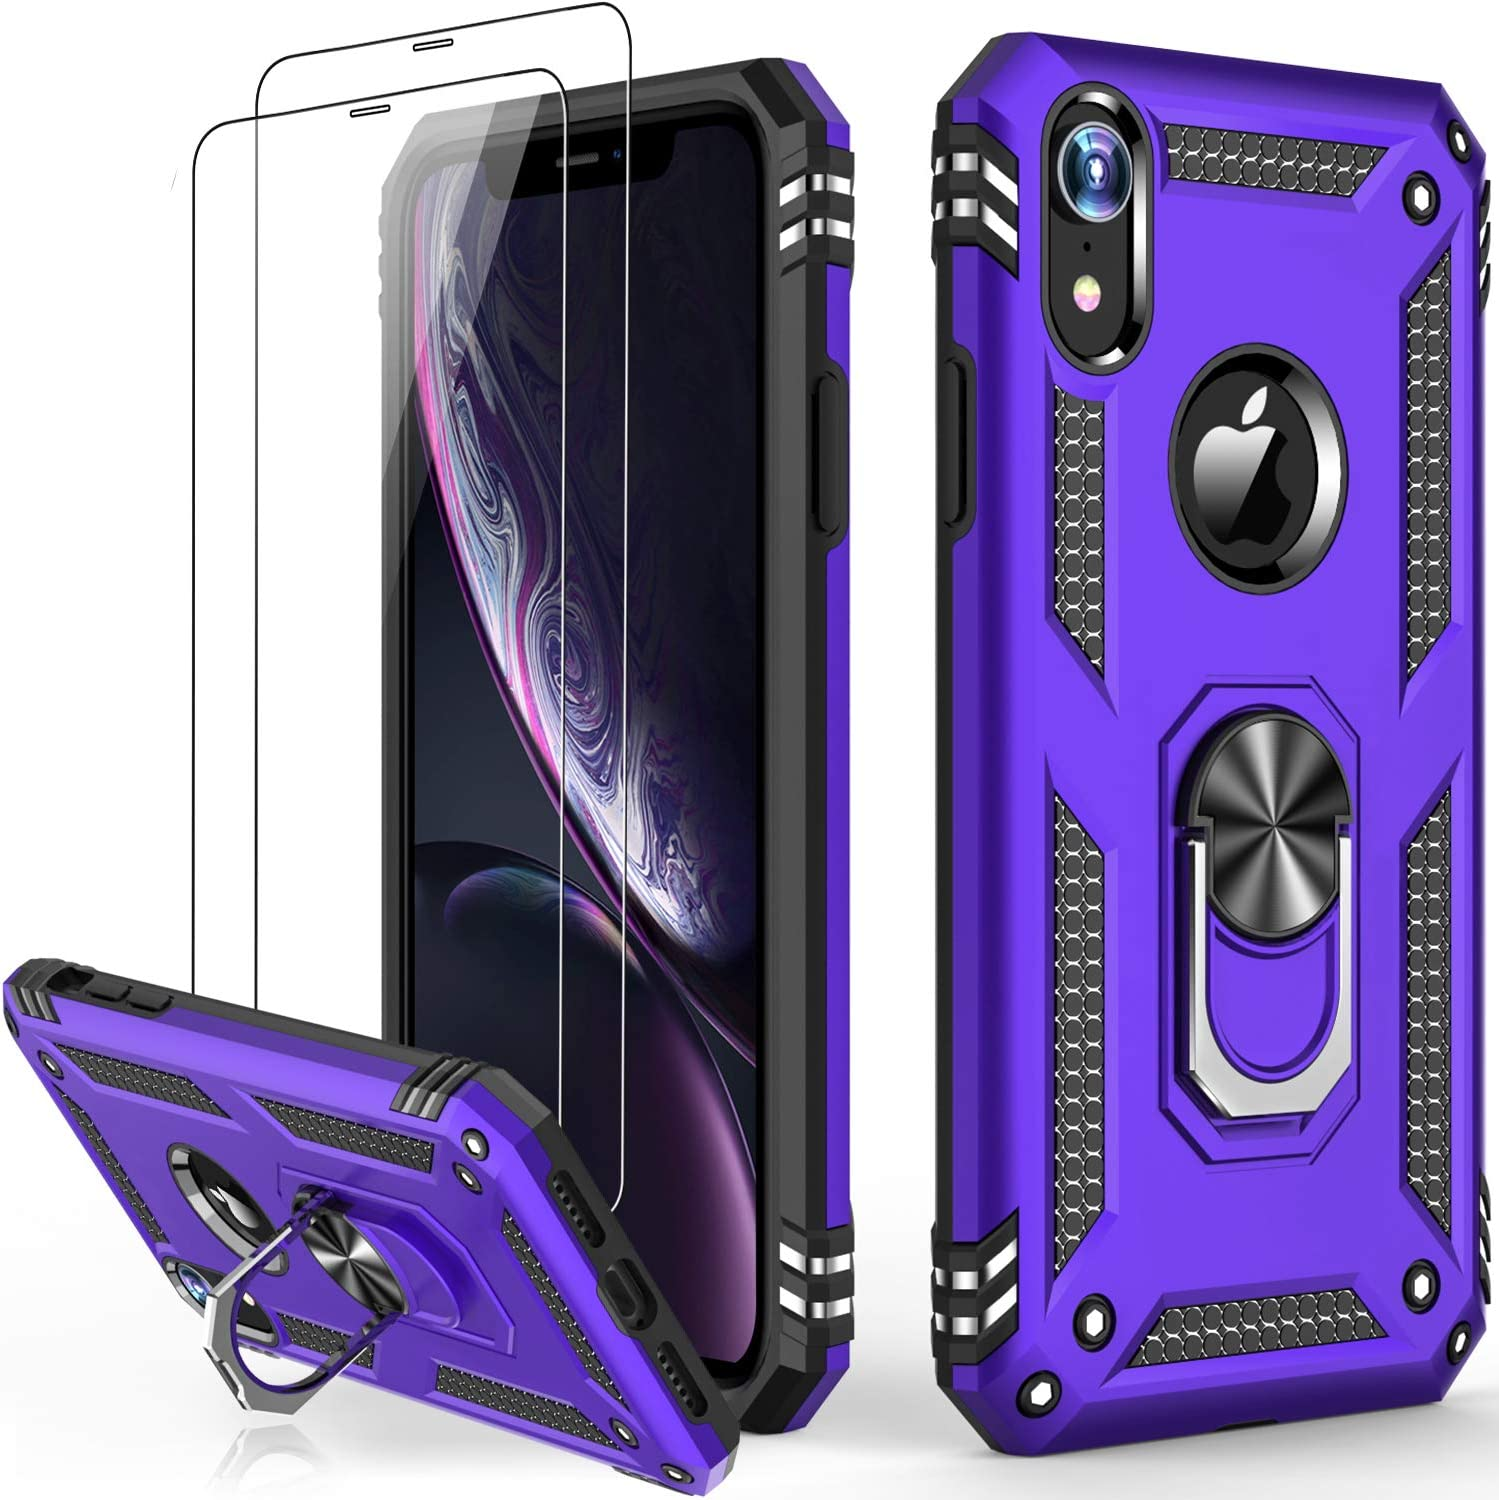 iPhone XR Case with Tempered Glass Screen Protector,Military Grade 16ft. Drop Tested Cover with Magnetic Ring Kickstand Protective Phone Case for iPhone XR Purple